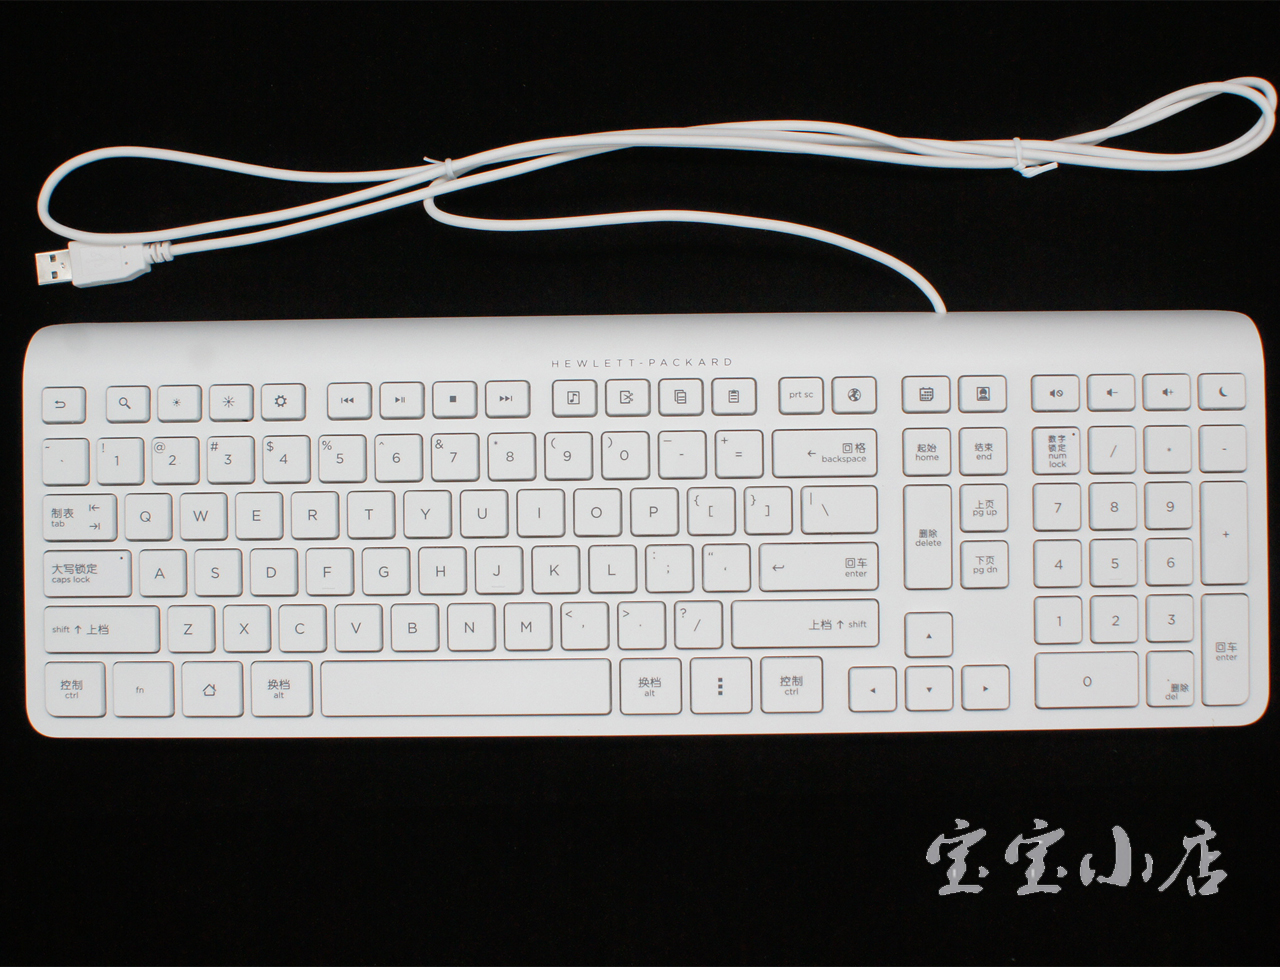 新到货500pcs 惠普HP SK-2026 USB Wired Computer PC Black Multimedia Keyboard 台式机 PC 键盘 象牙白